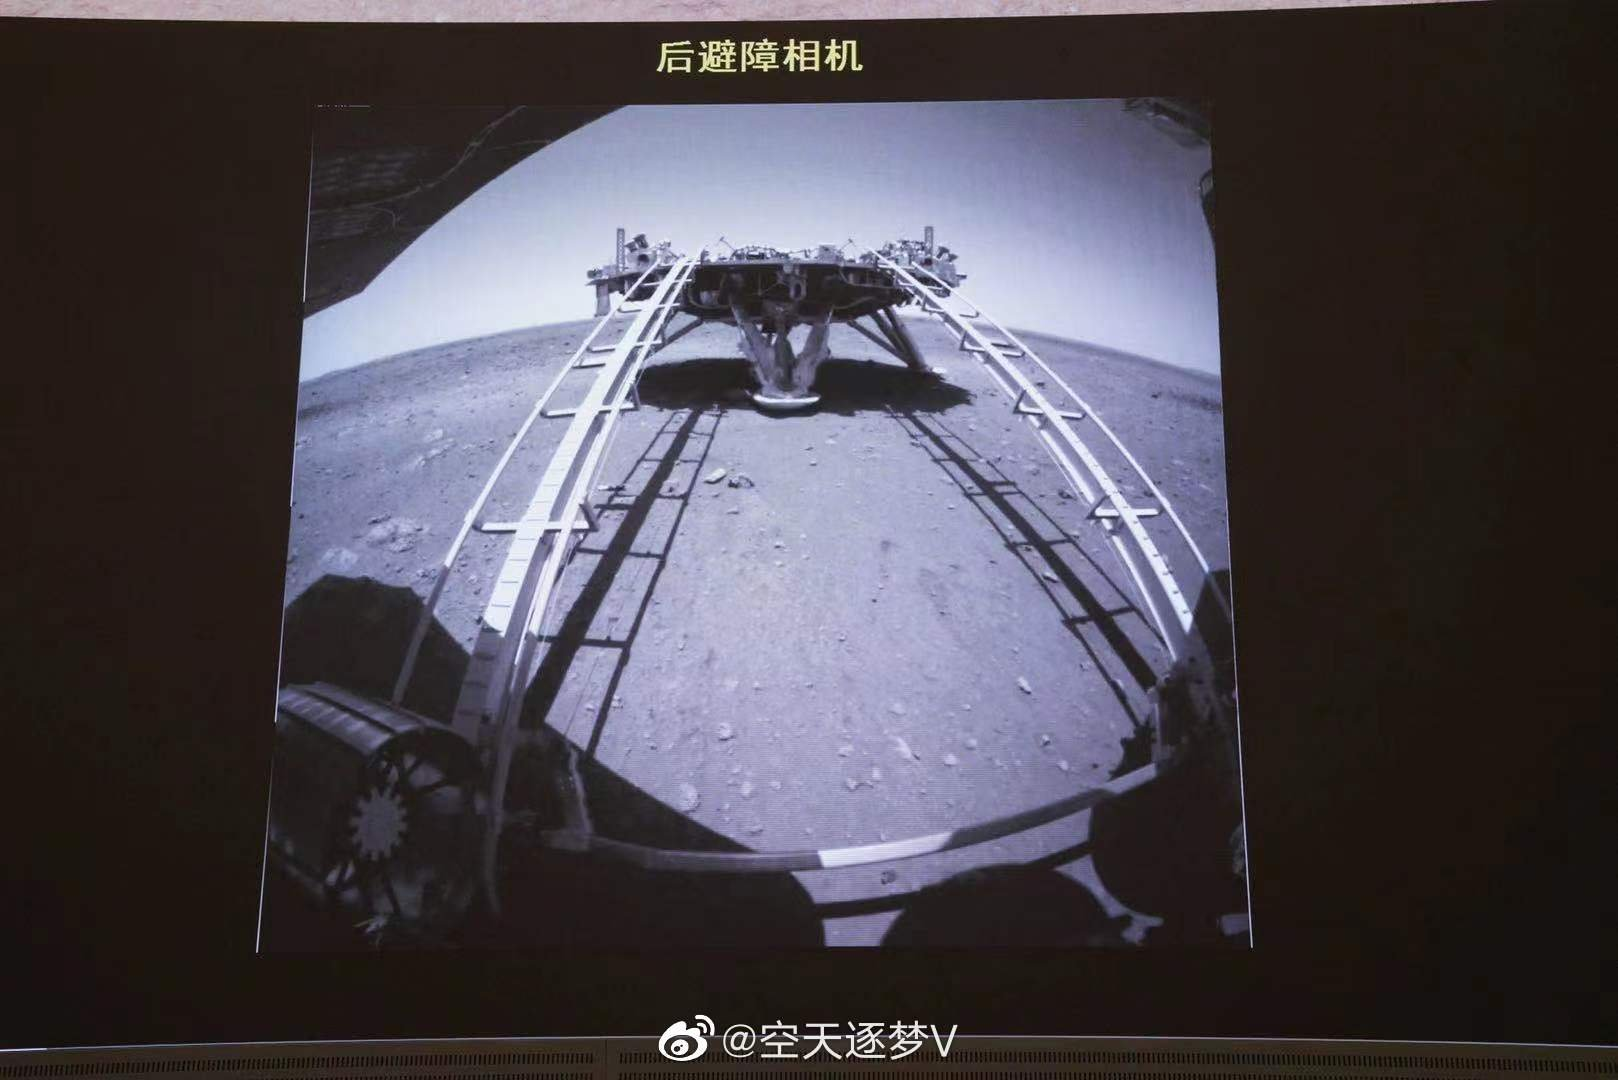 [Chine] Mission Tianwen-1 (orbiteur + atterrisseur + rover) - Page 9 11980